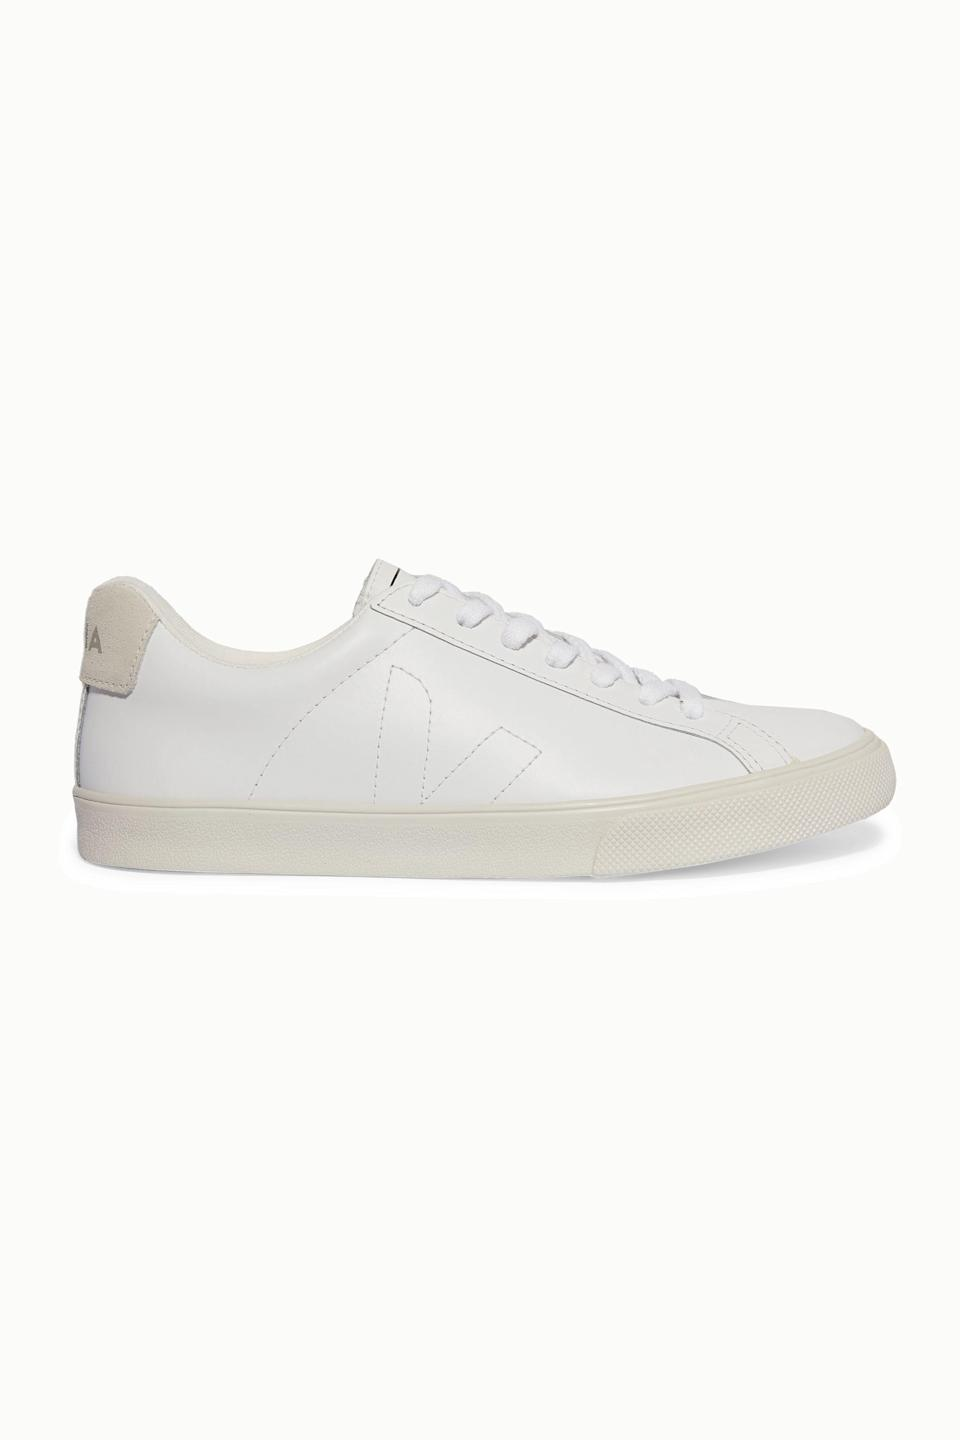 "<p><strong>Veja</strong></p><p>net-a-porter.com</p><p><strong>$120.00</strong></p><p><a href=""https://go.redirectingat.com?id=74968X1596630&url=https%3A%2F%2Fwww.net-a-porter.com%2Fen-us%2Fshop%2Fproduct%2Fveja%2Fnet-sustain-esplar-suede-trimmed-leather-sneakers%2F1191684&sref=https%3A%2F%2Fwww.marieclaire.com%2Ffashion%2Fg35178951%2Fminimalist-wardrobe-steps%2F"" rel=""nofollow noopener"" target=""_blank"" data-ylk=""slk:SHOP IT"" class=""link rapid-noclick-resp"">SHOP IT</a></p><p>These simple sneakers will be the chic finishing touch on any look. </p>"